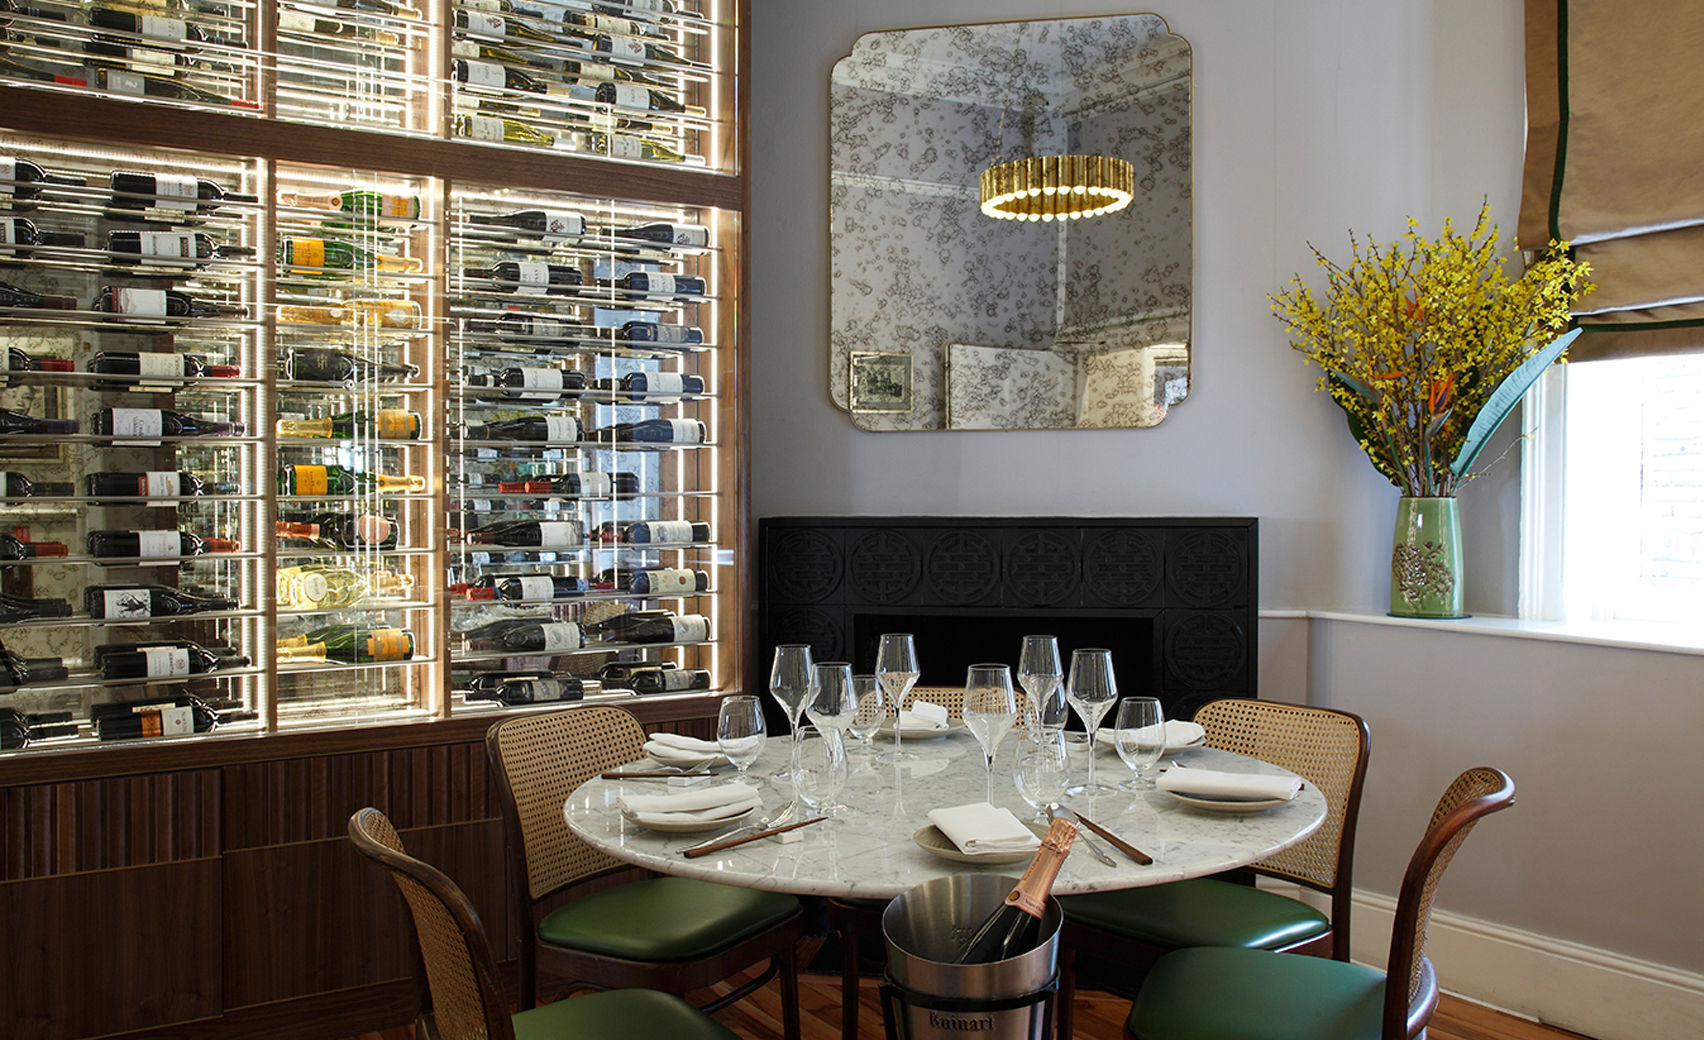 The Wine Room, The House of Ho